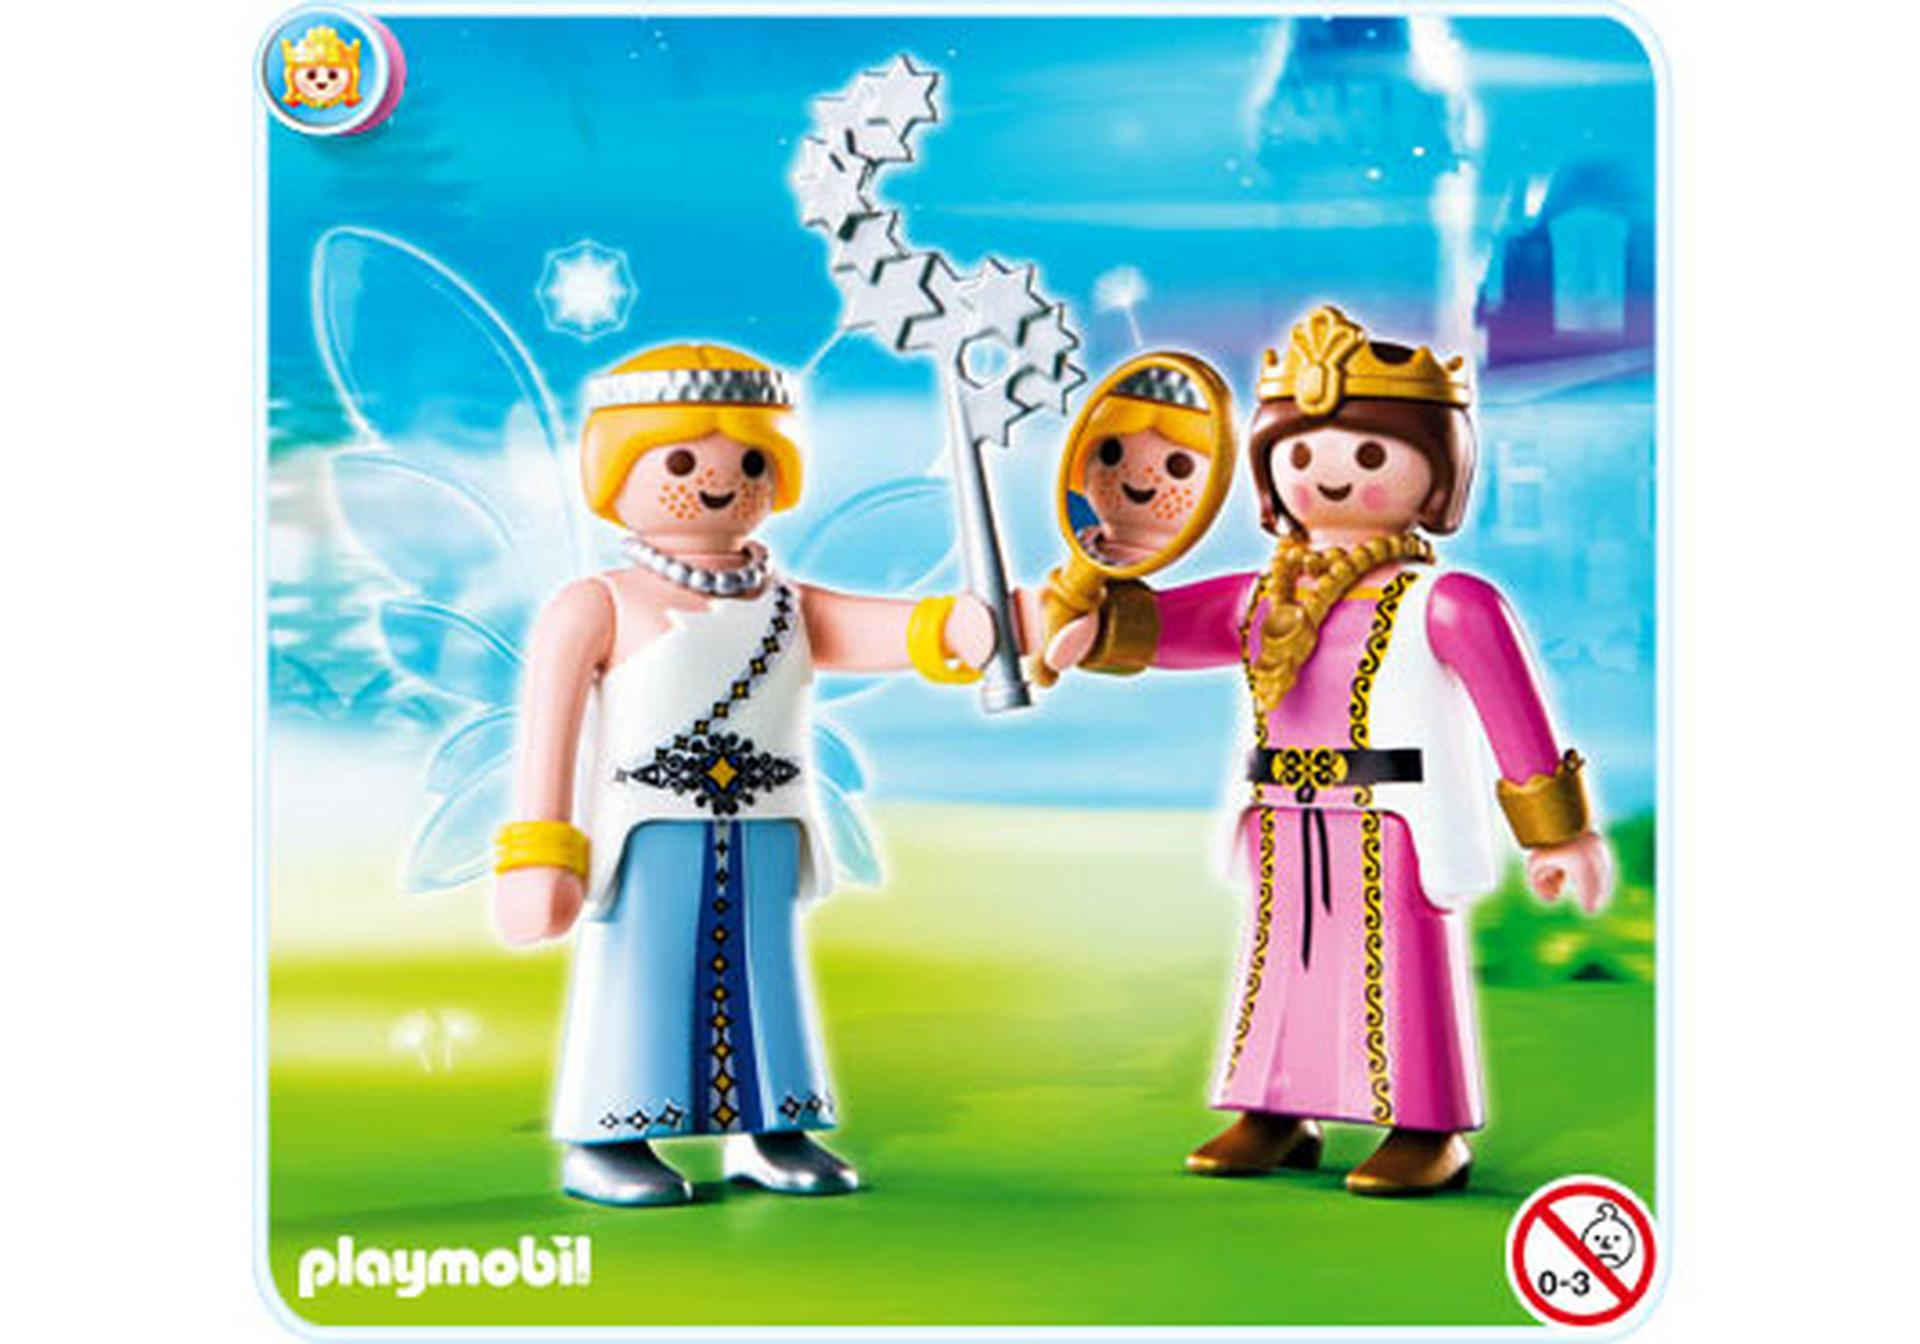 Playmobil duo princesse et f e 4128 a playmobil suisse for Playmobil buanderie